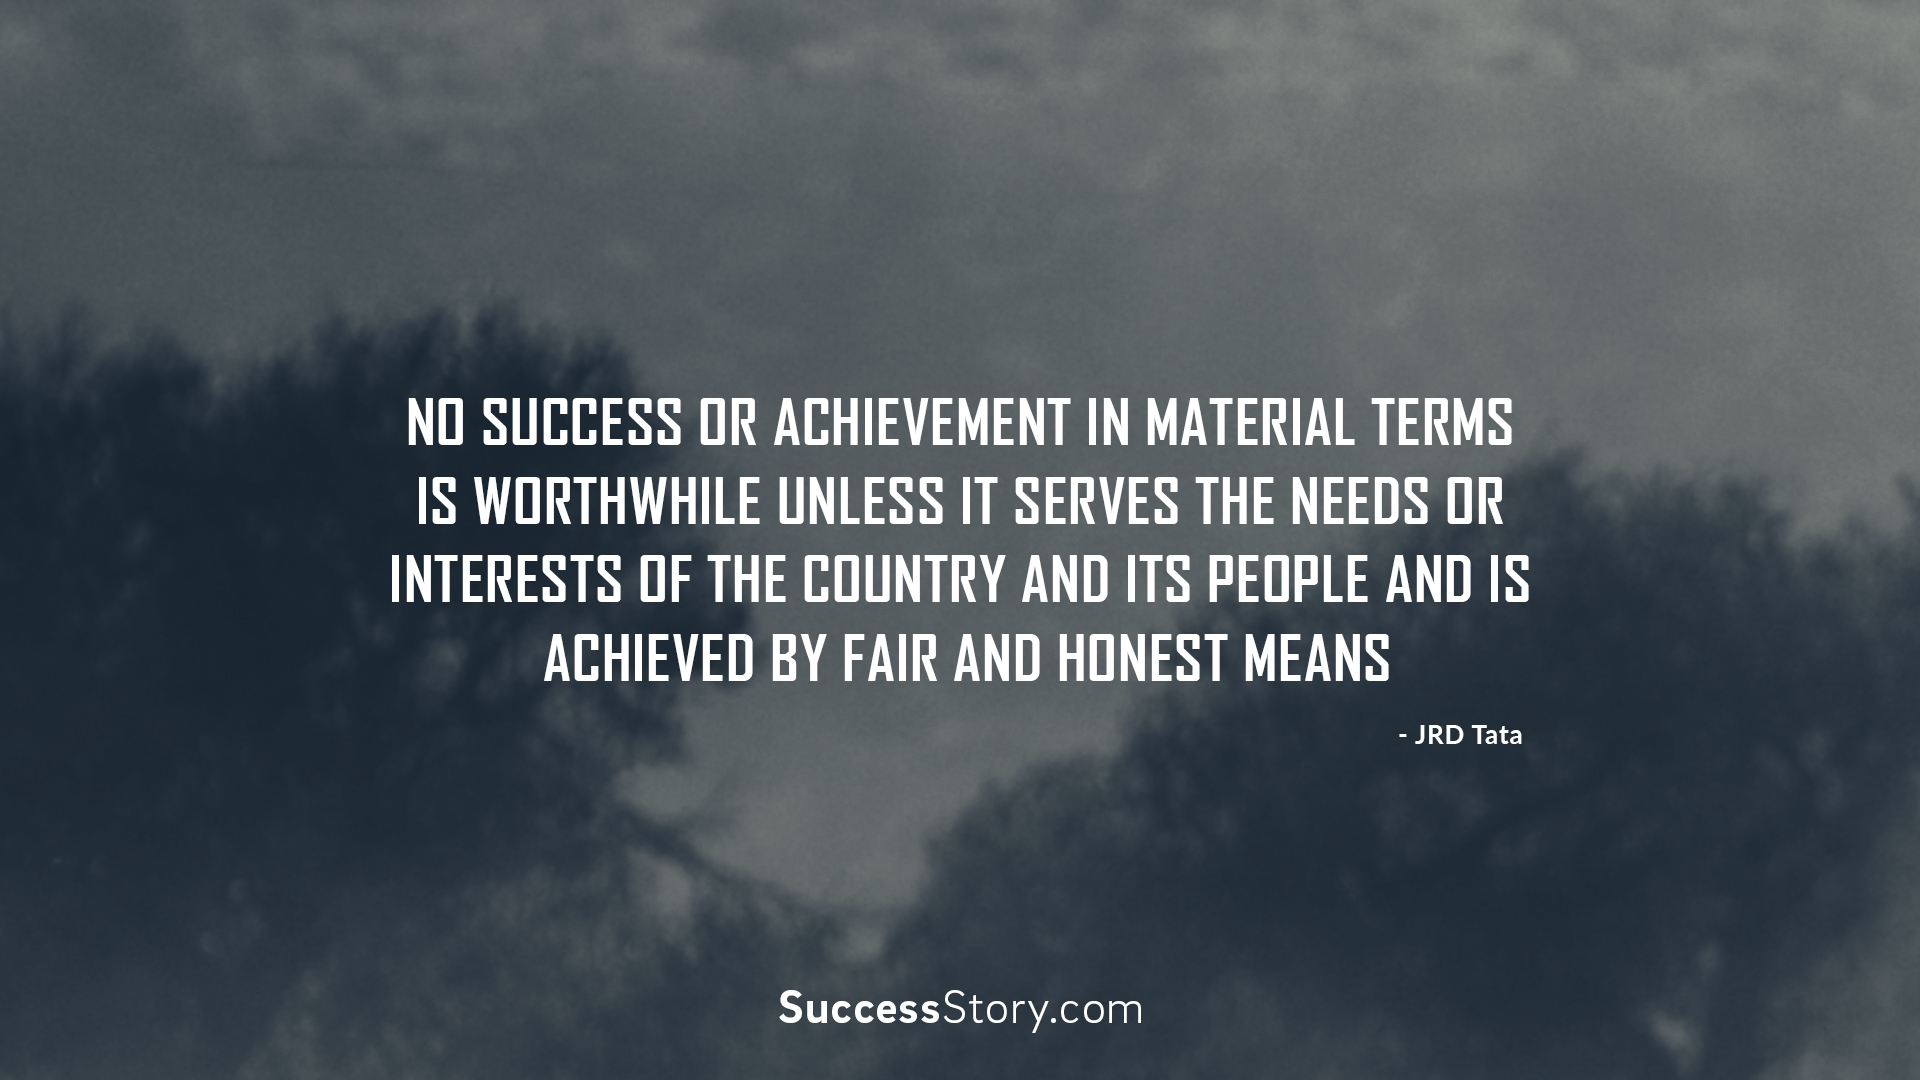 No success or achievement in material